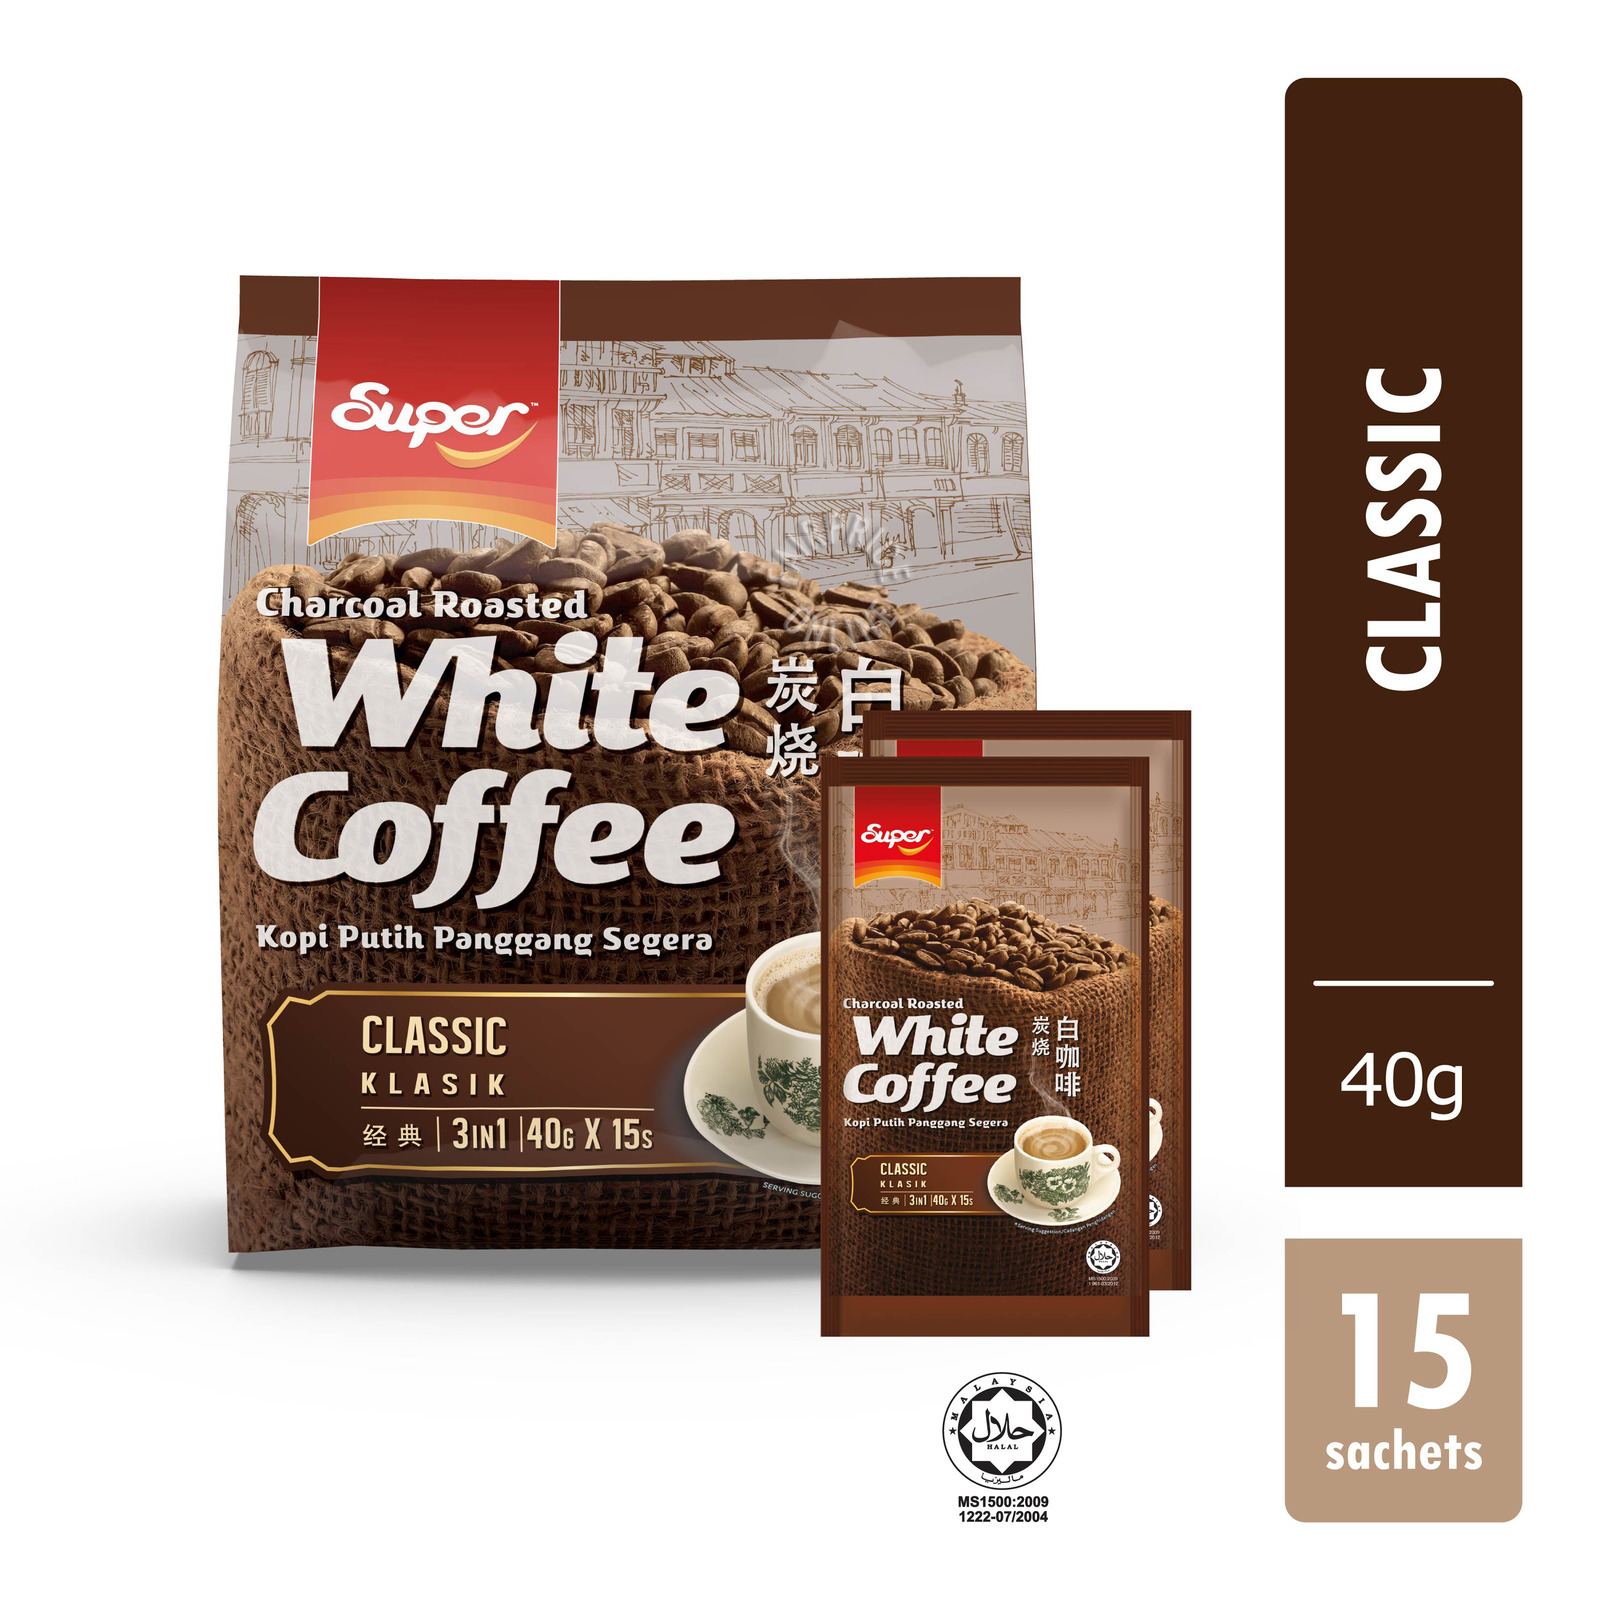 Super 3 in 1 Instant Charcoal Roasted White Coffee - Classic